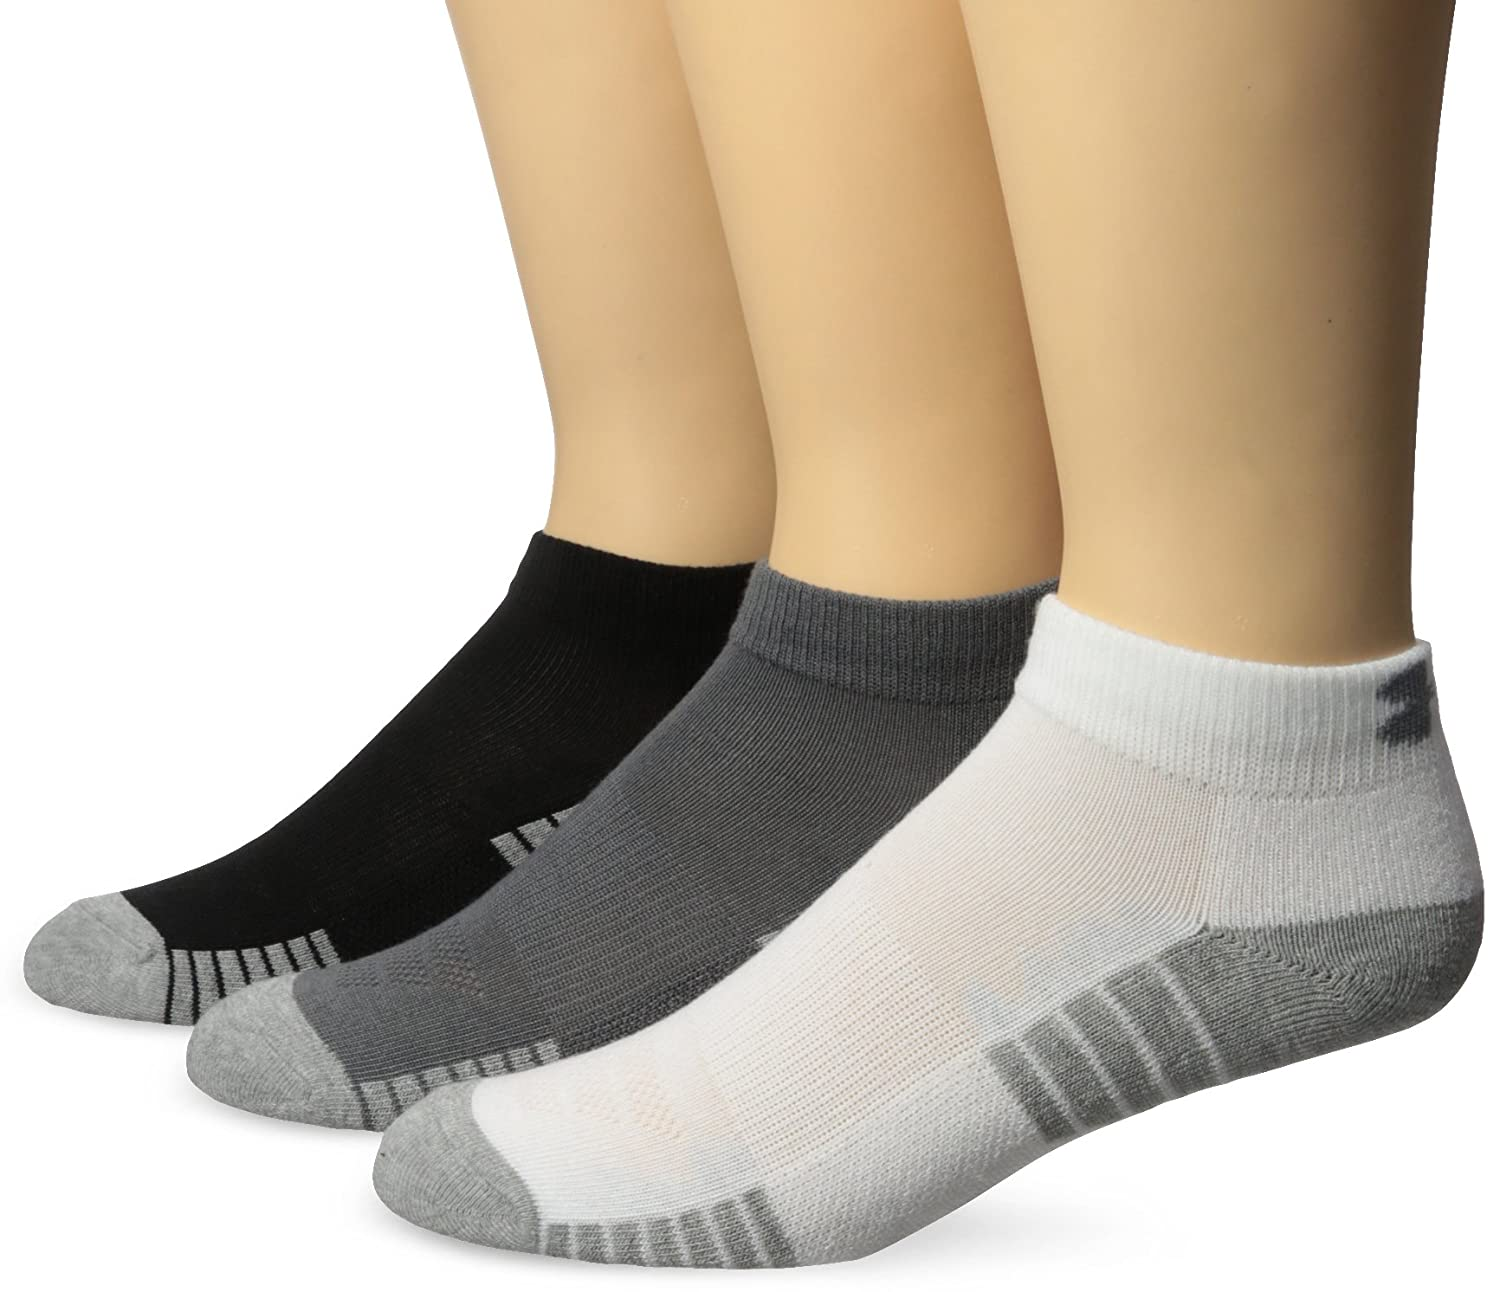 Under Armour Men's Heatgear Tech Lo Cut Socks (3 Pack)